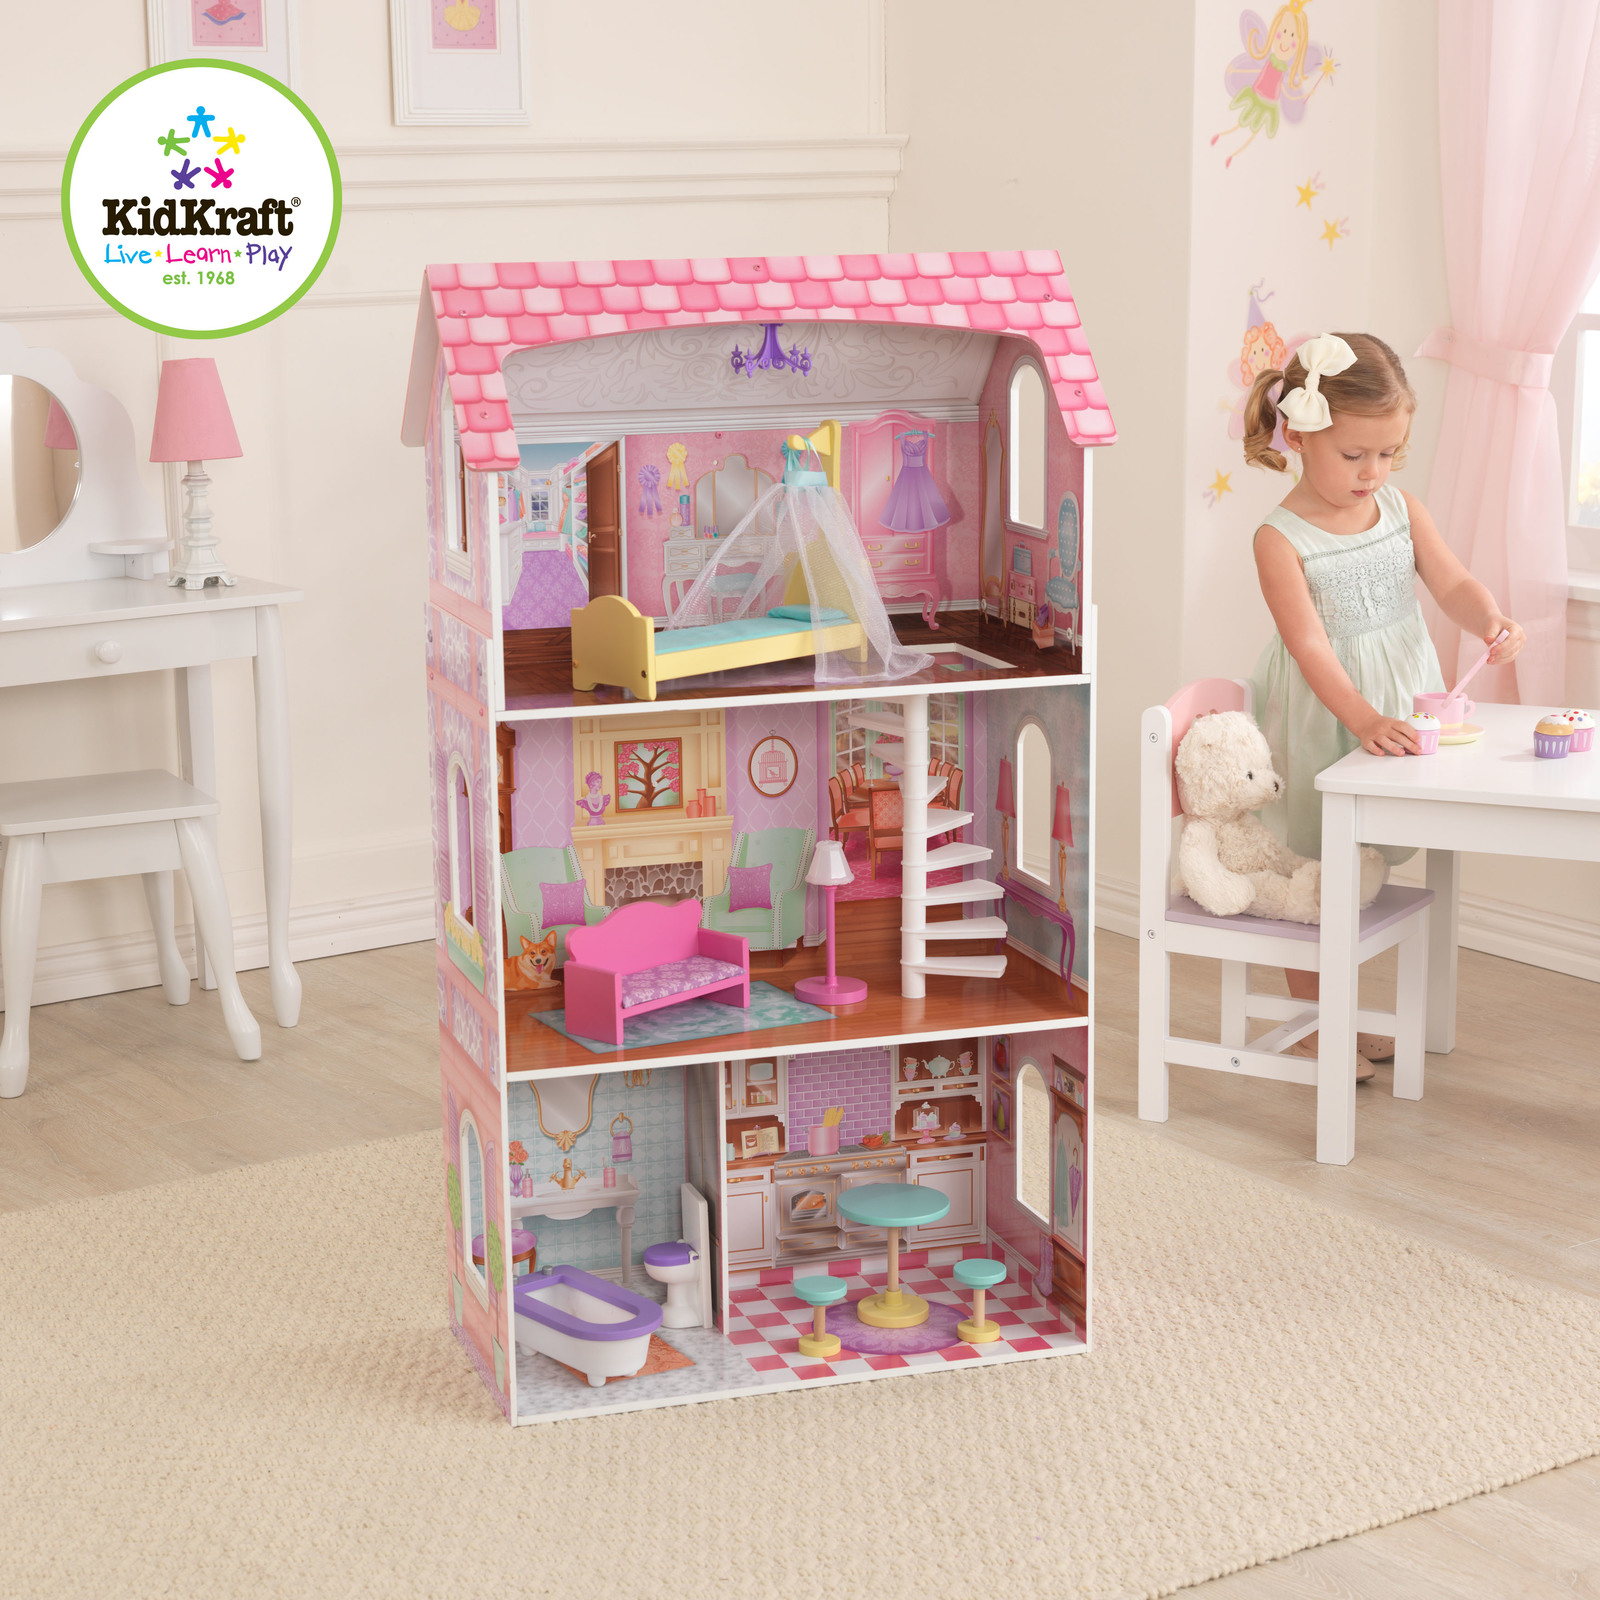 Kidkraft Penelope Dollhouse The Dolls House Boutique